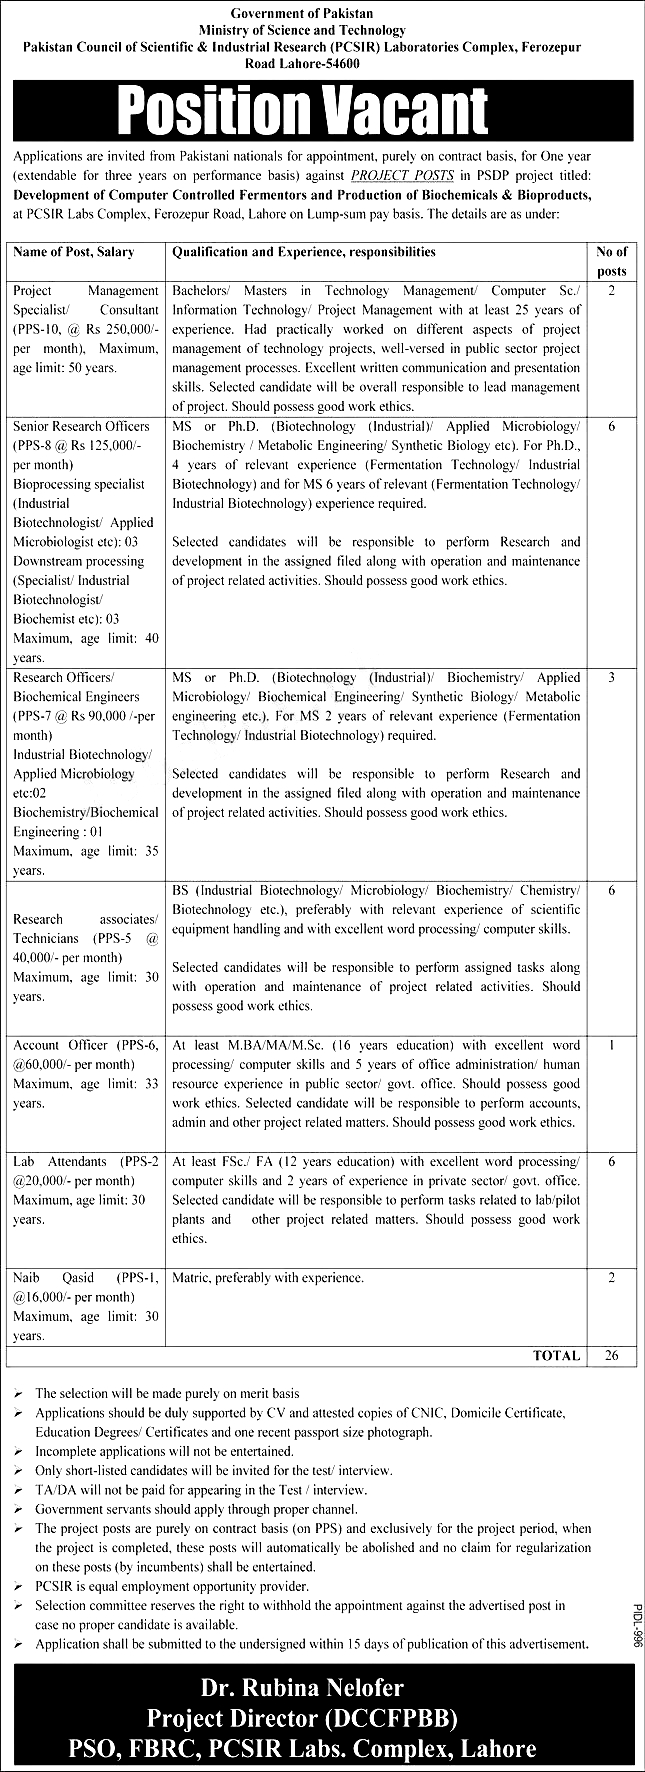 Ministry of Science & Technology MOST Pakistan Jobs 2021